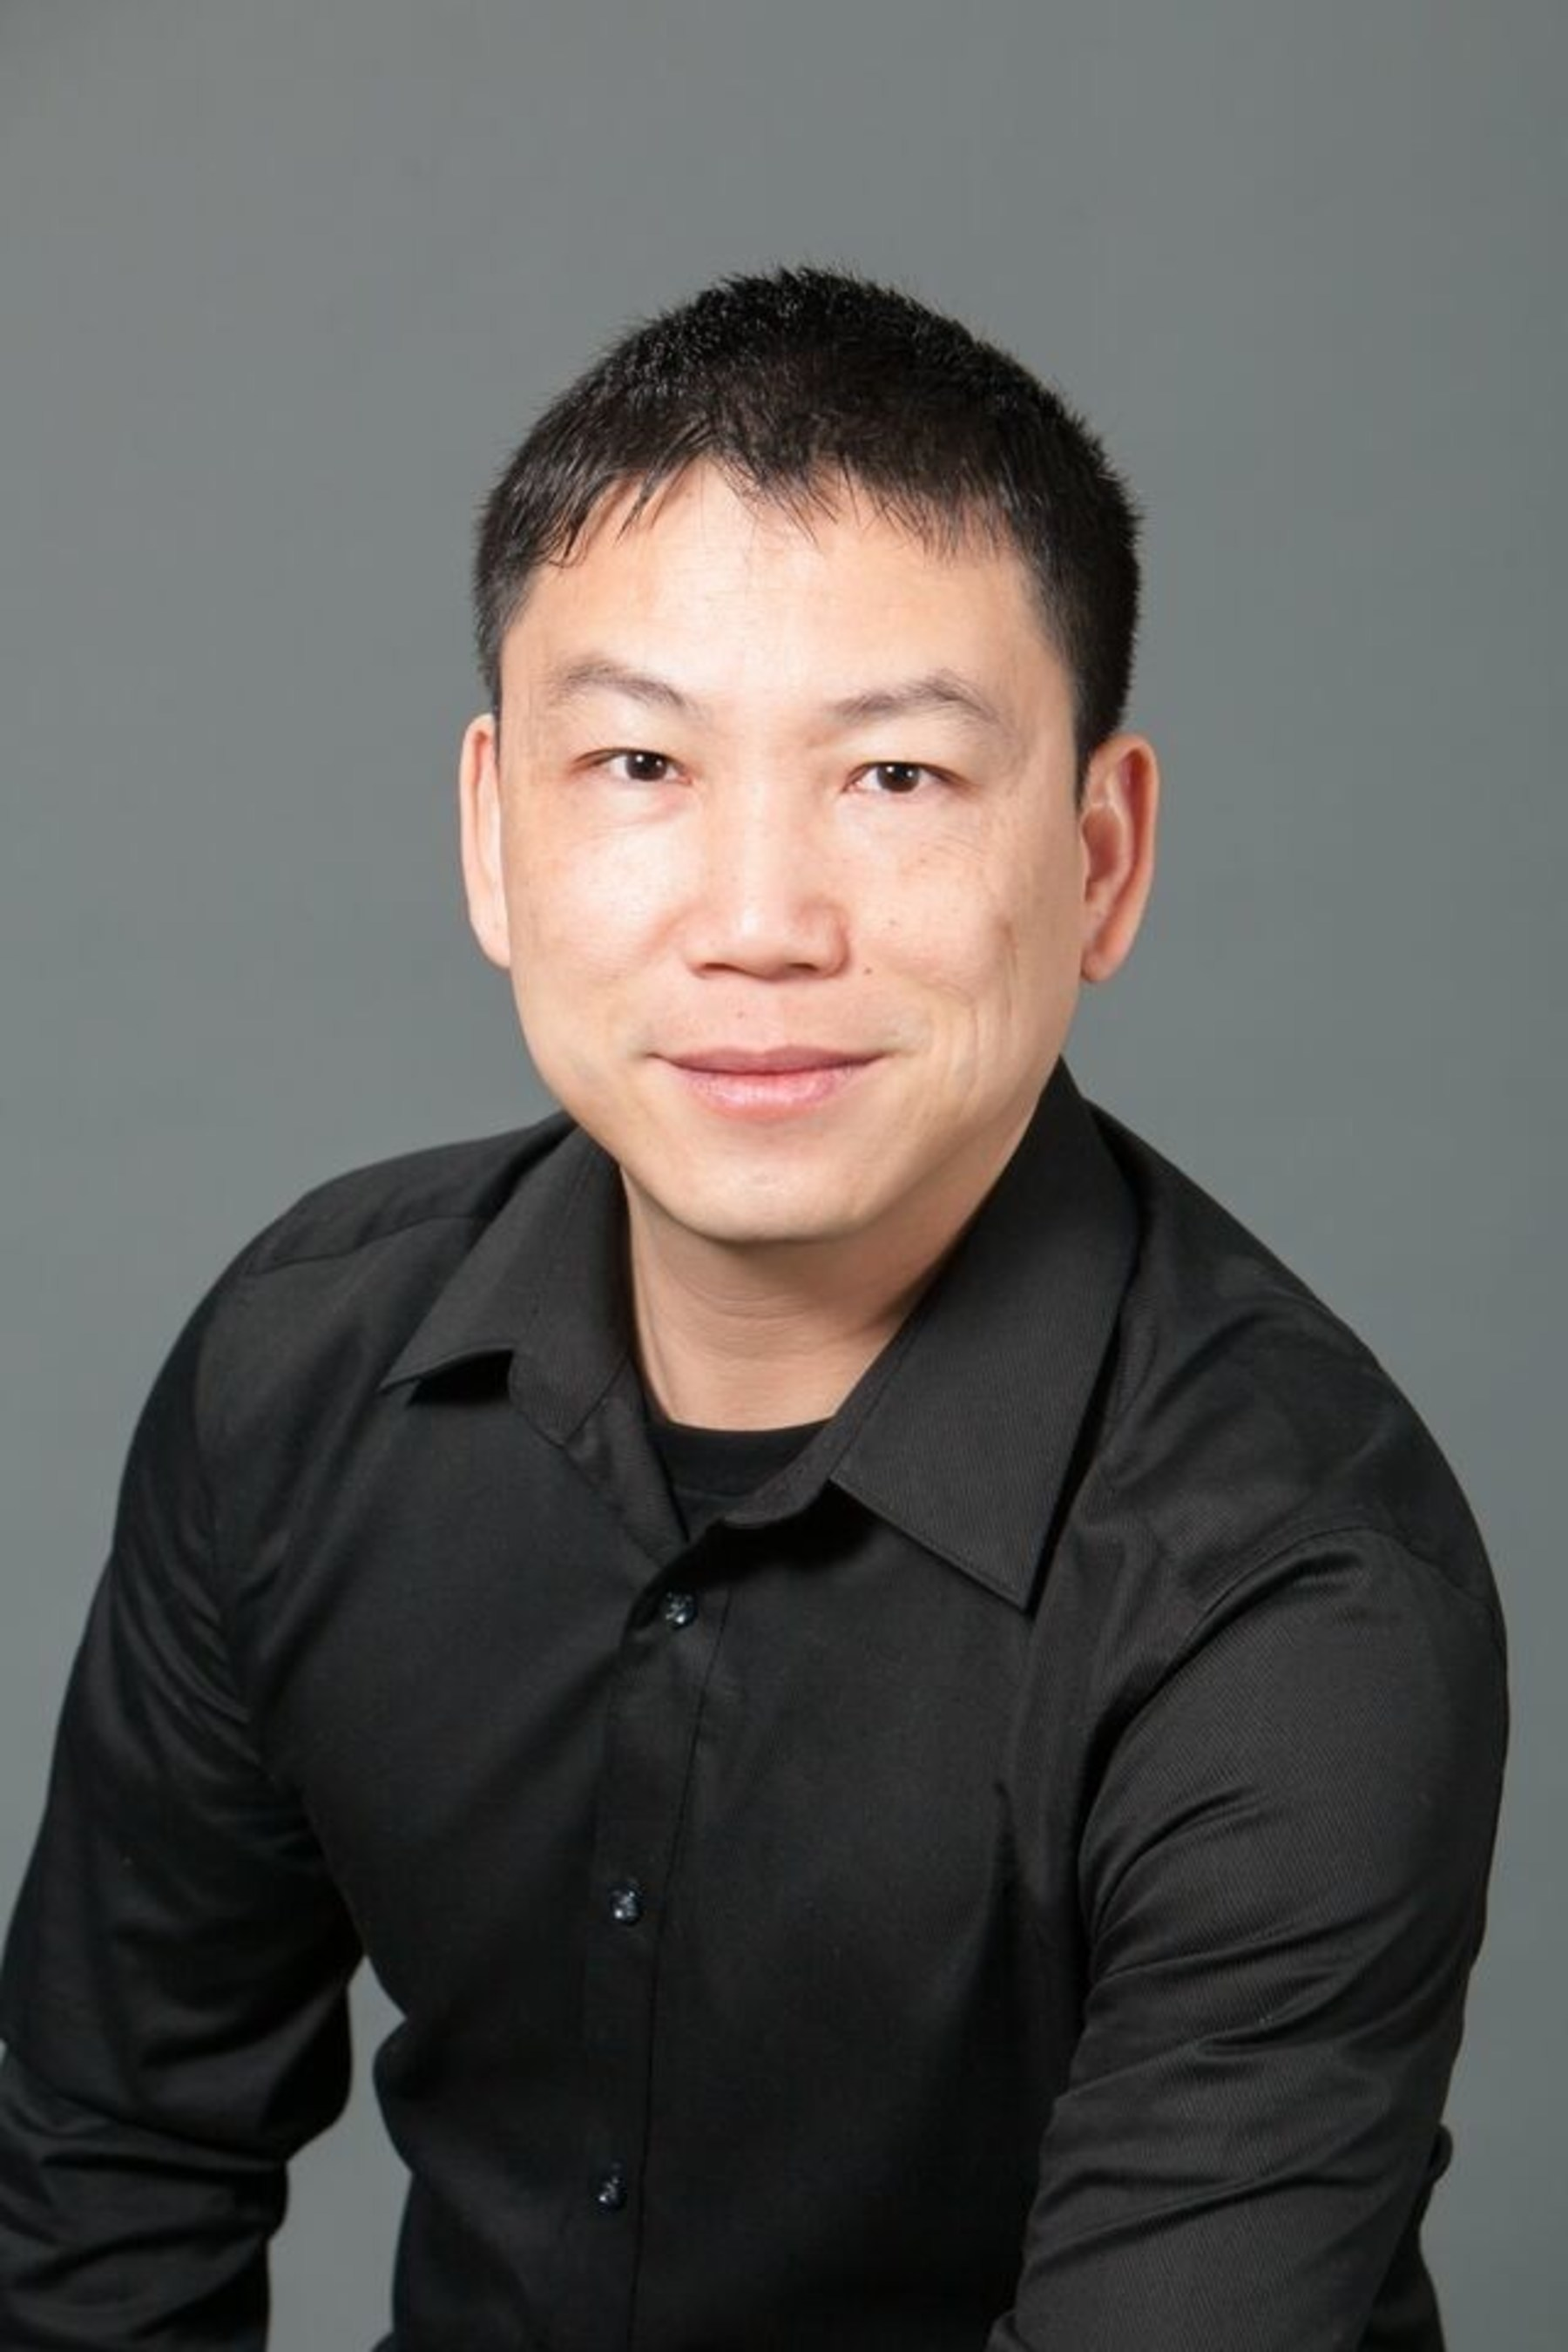 Daniel Huang, mophie co-founder and CEO, named to Touchjet board of directors and will serve as the new chief design adviser.